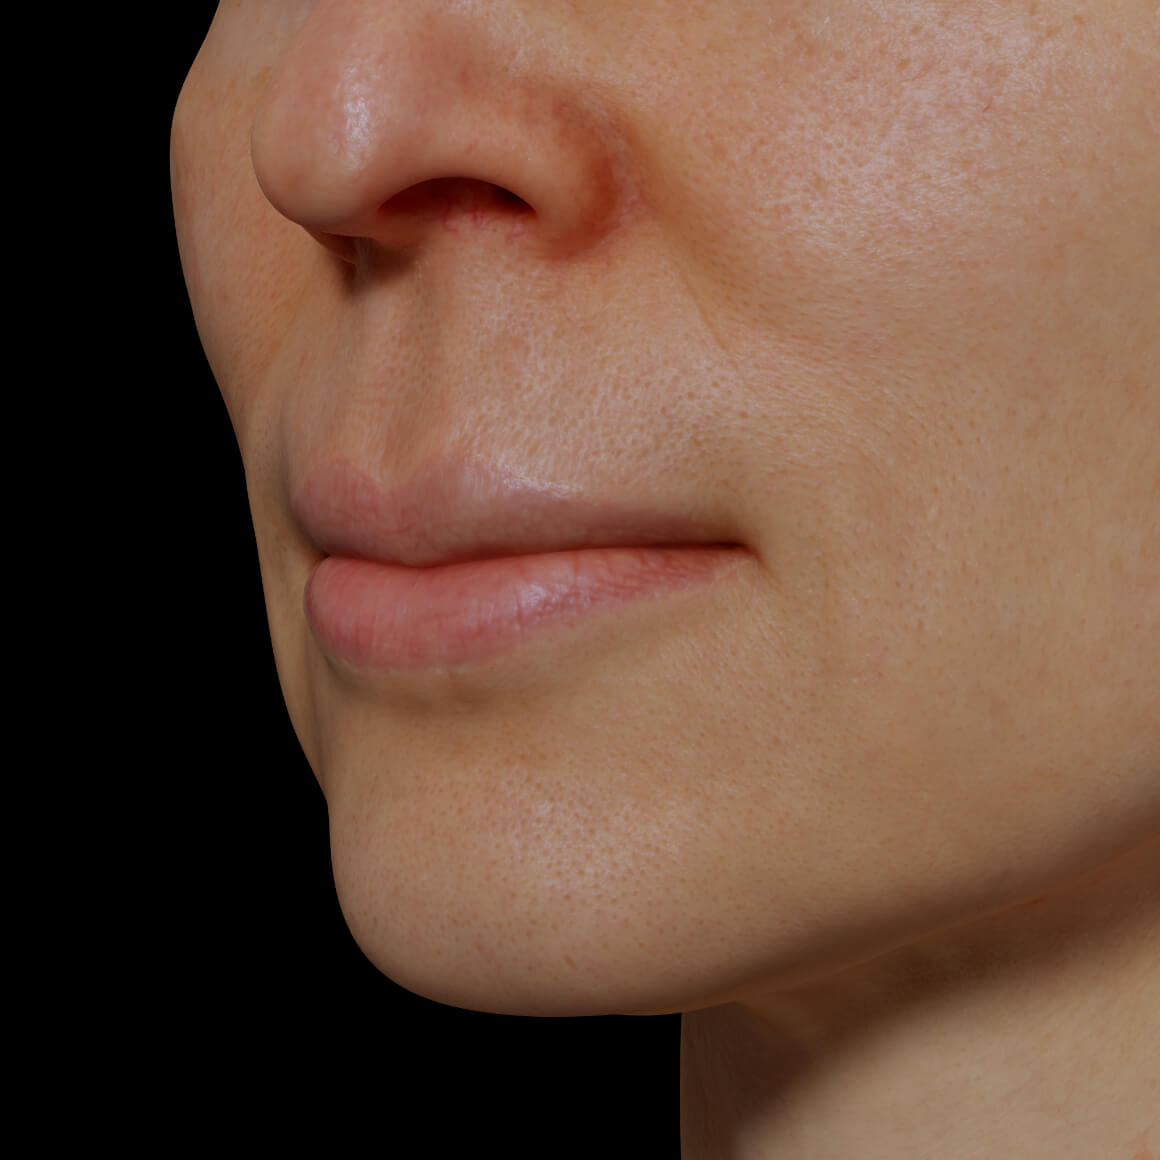 Female patient from Clinique Chloé at an angle showing hydrated lips after a mesotherapy treatment